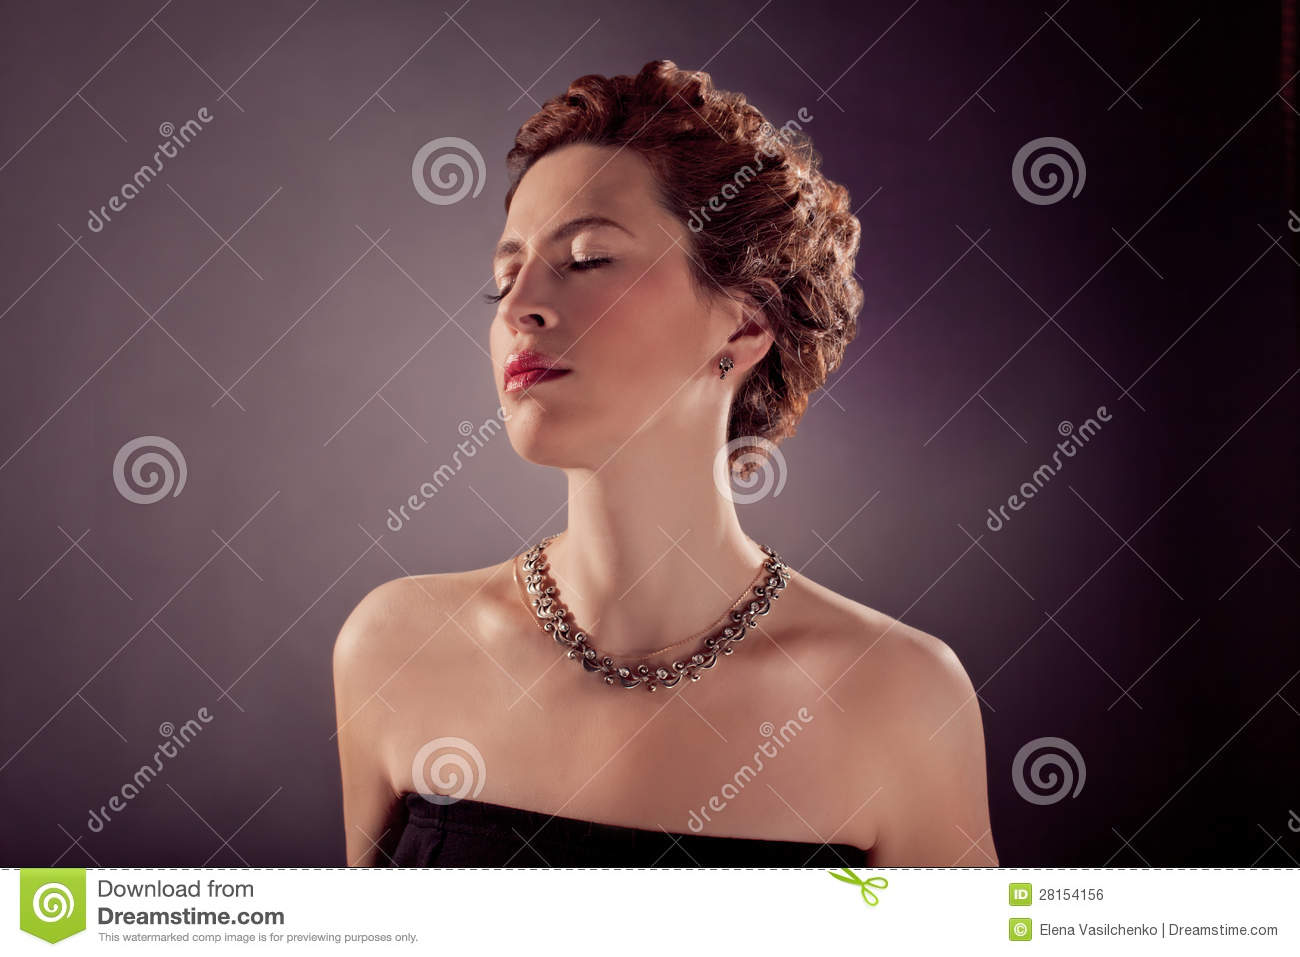 Elegant bosomy mature woman in black tight dress and red curly hair.